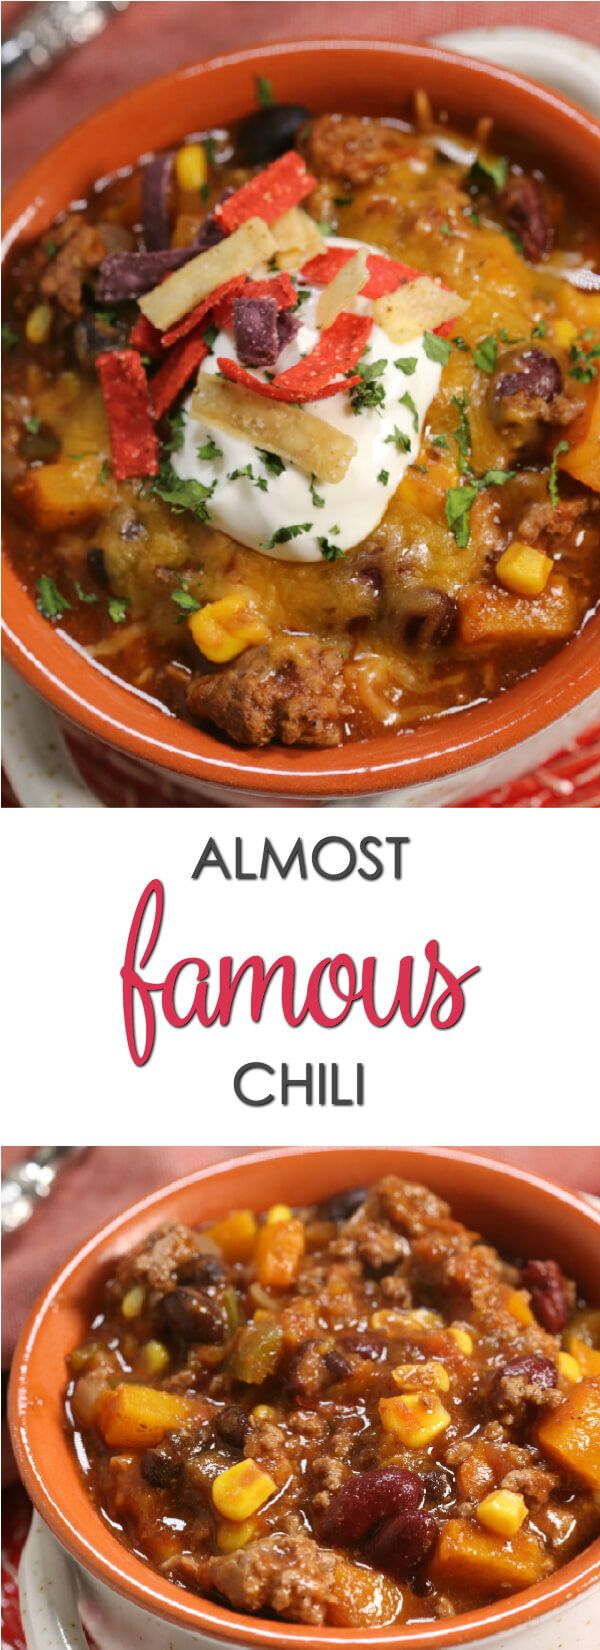 This Almost Famous Chili is one of the world best chili recipe ever. It's thick, hearty and loaded with goodness. (ad) #ProjectEnvolve #recipe